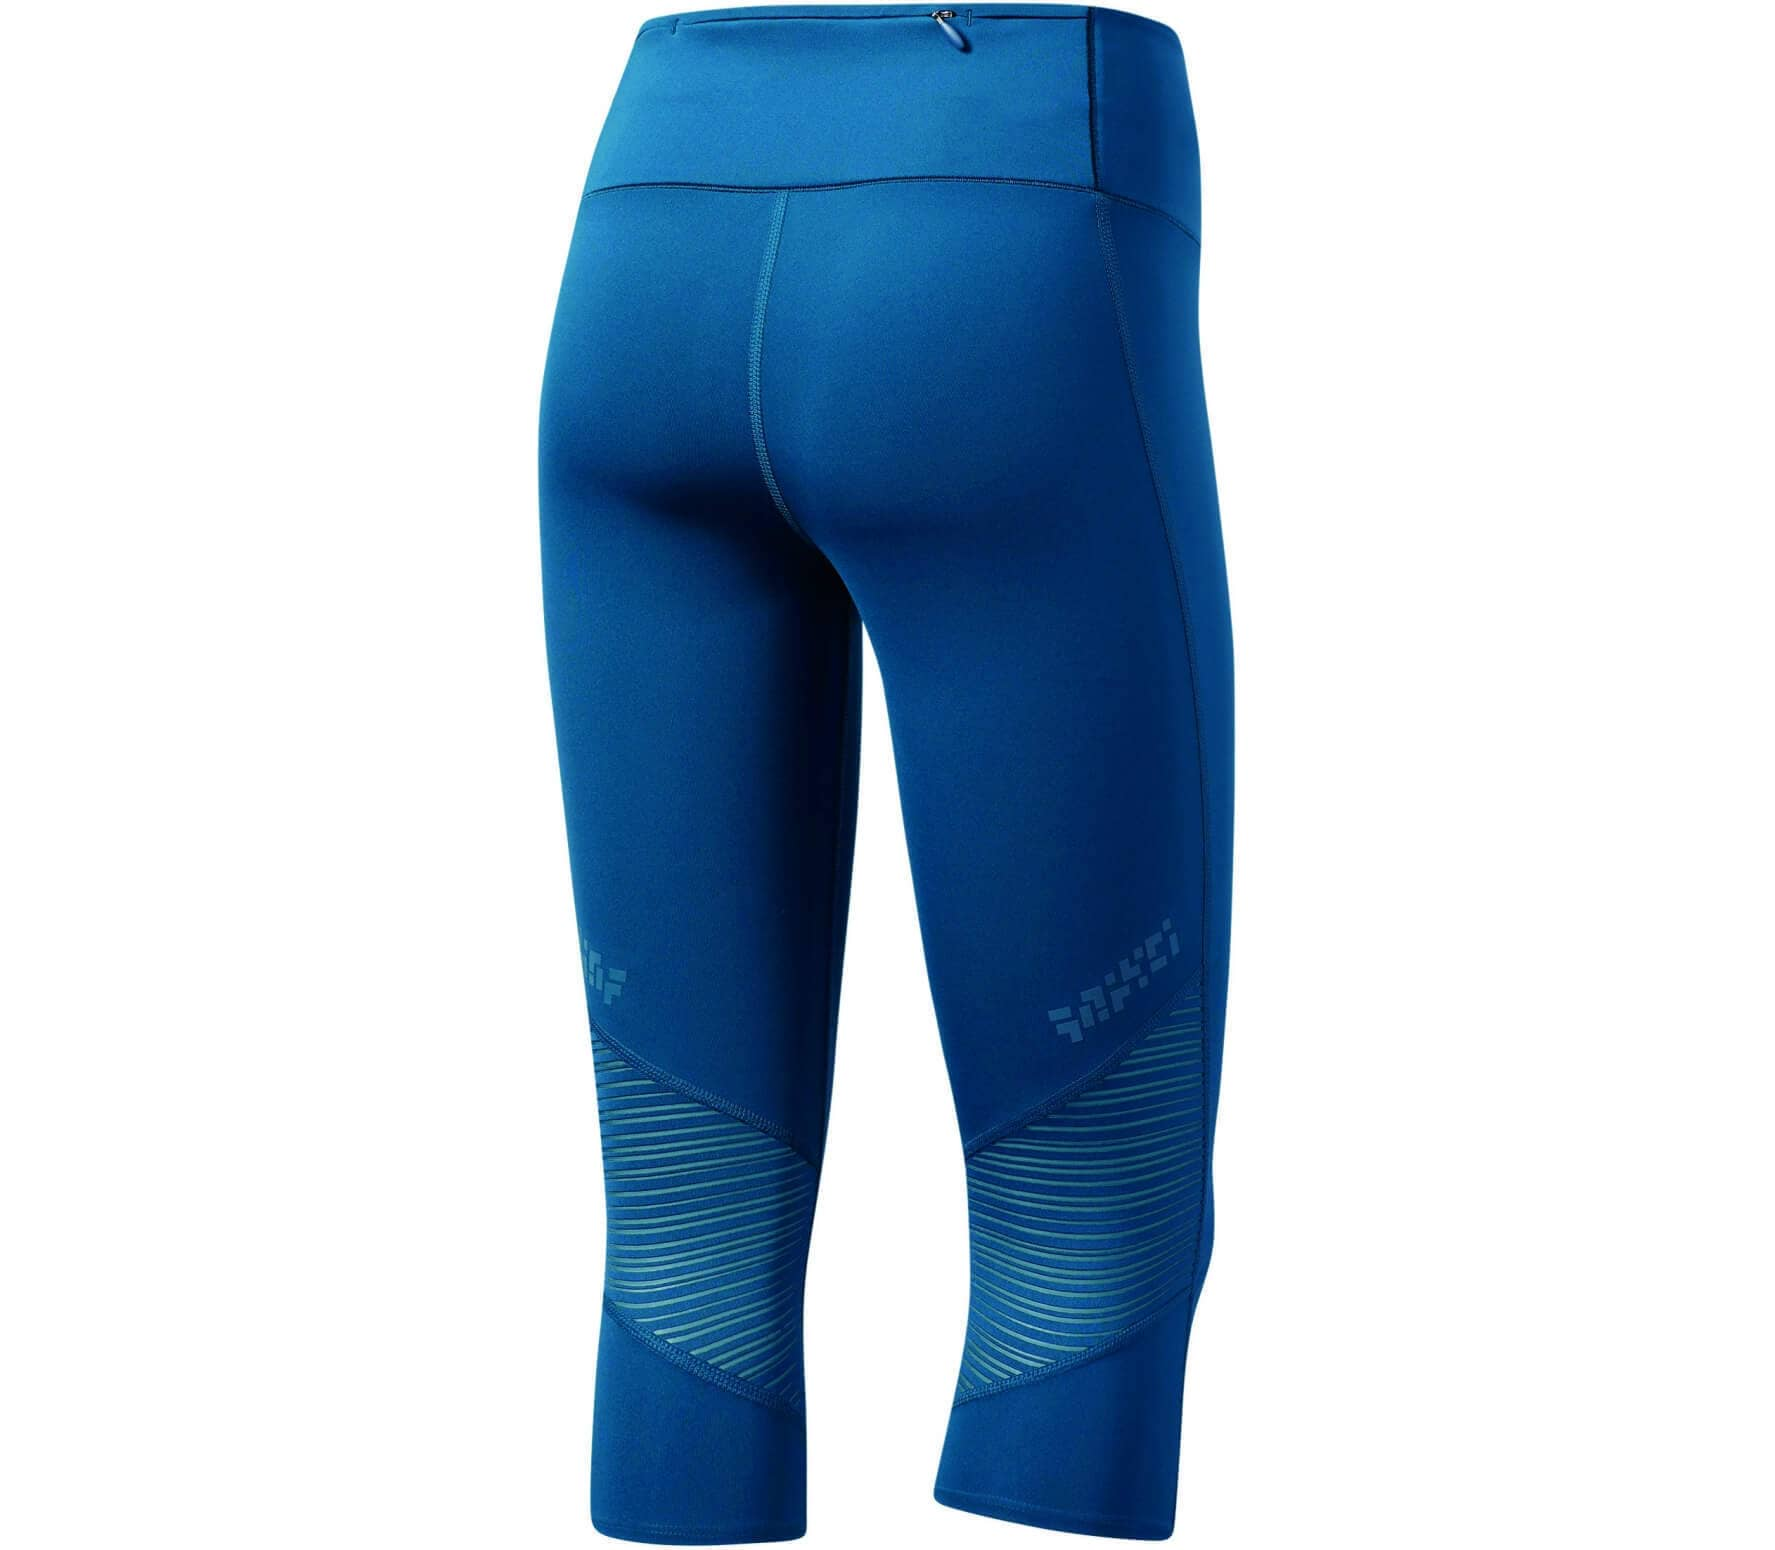 1bcdb4deeb60e Adidas - Supernova 3 4 women s running pants (blue) - buy it at the ...